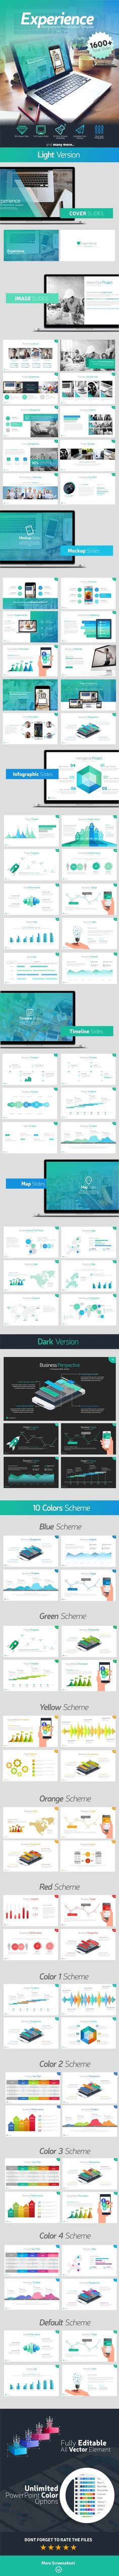 Experience Multipurpose PowerPoint Presentation Template #design #slides Download: http://graphicriver.net/item/experience-multipurpose-presentation-template/13799919?ref=ksioks